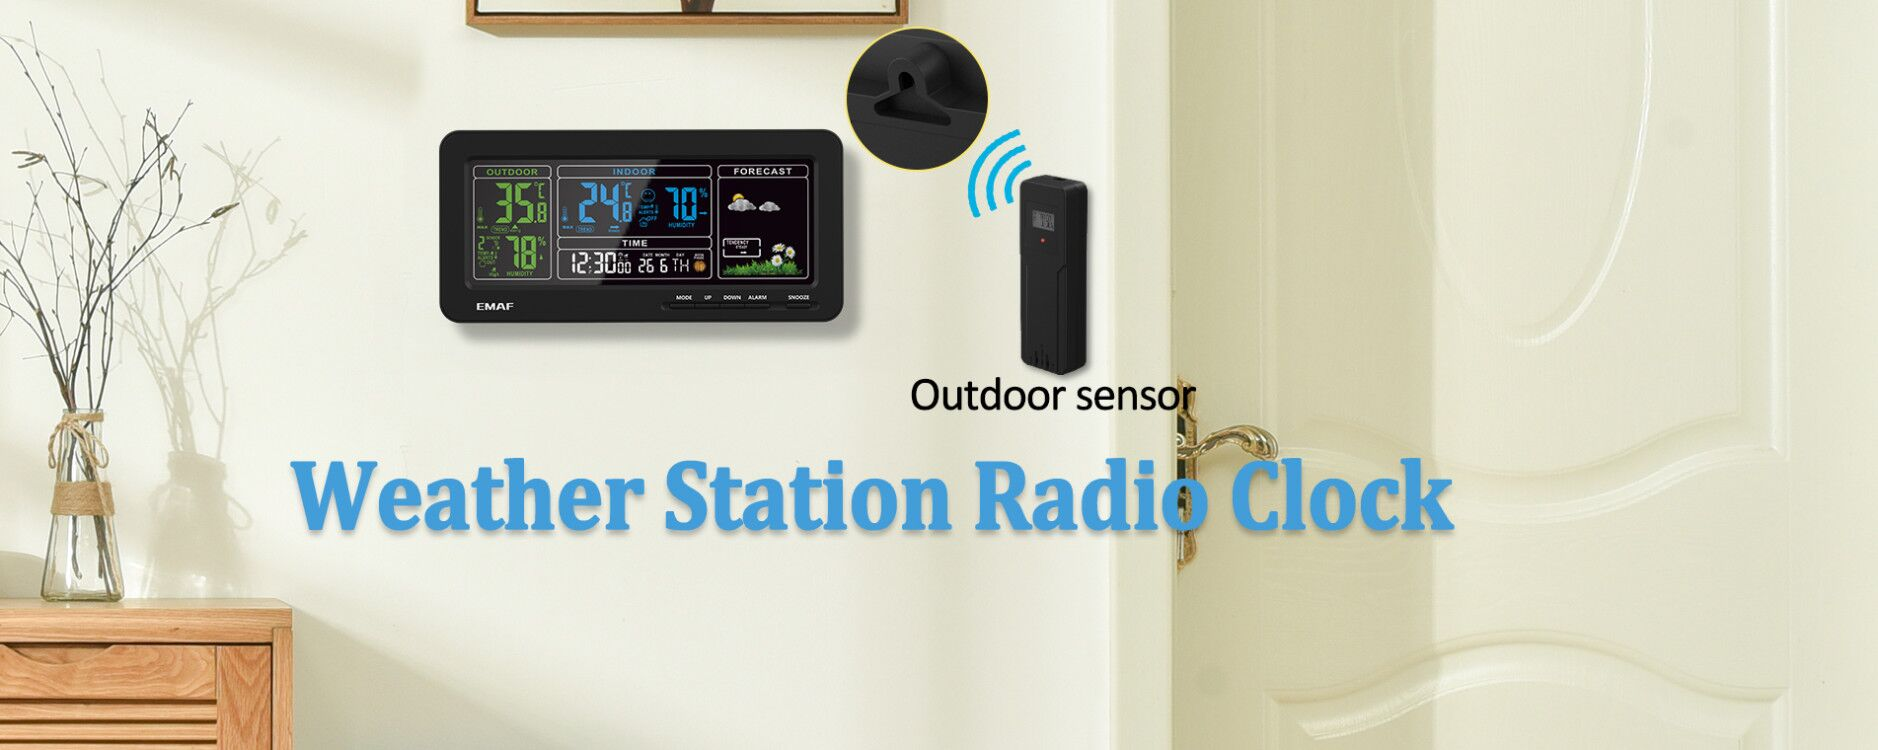 Weather station radio clock